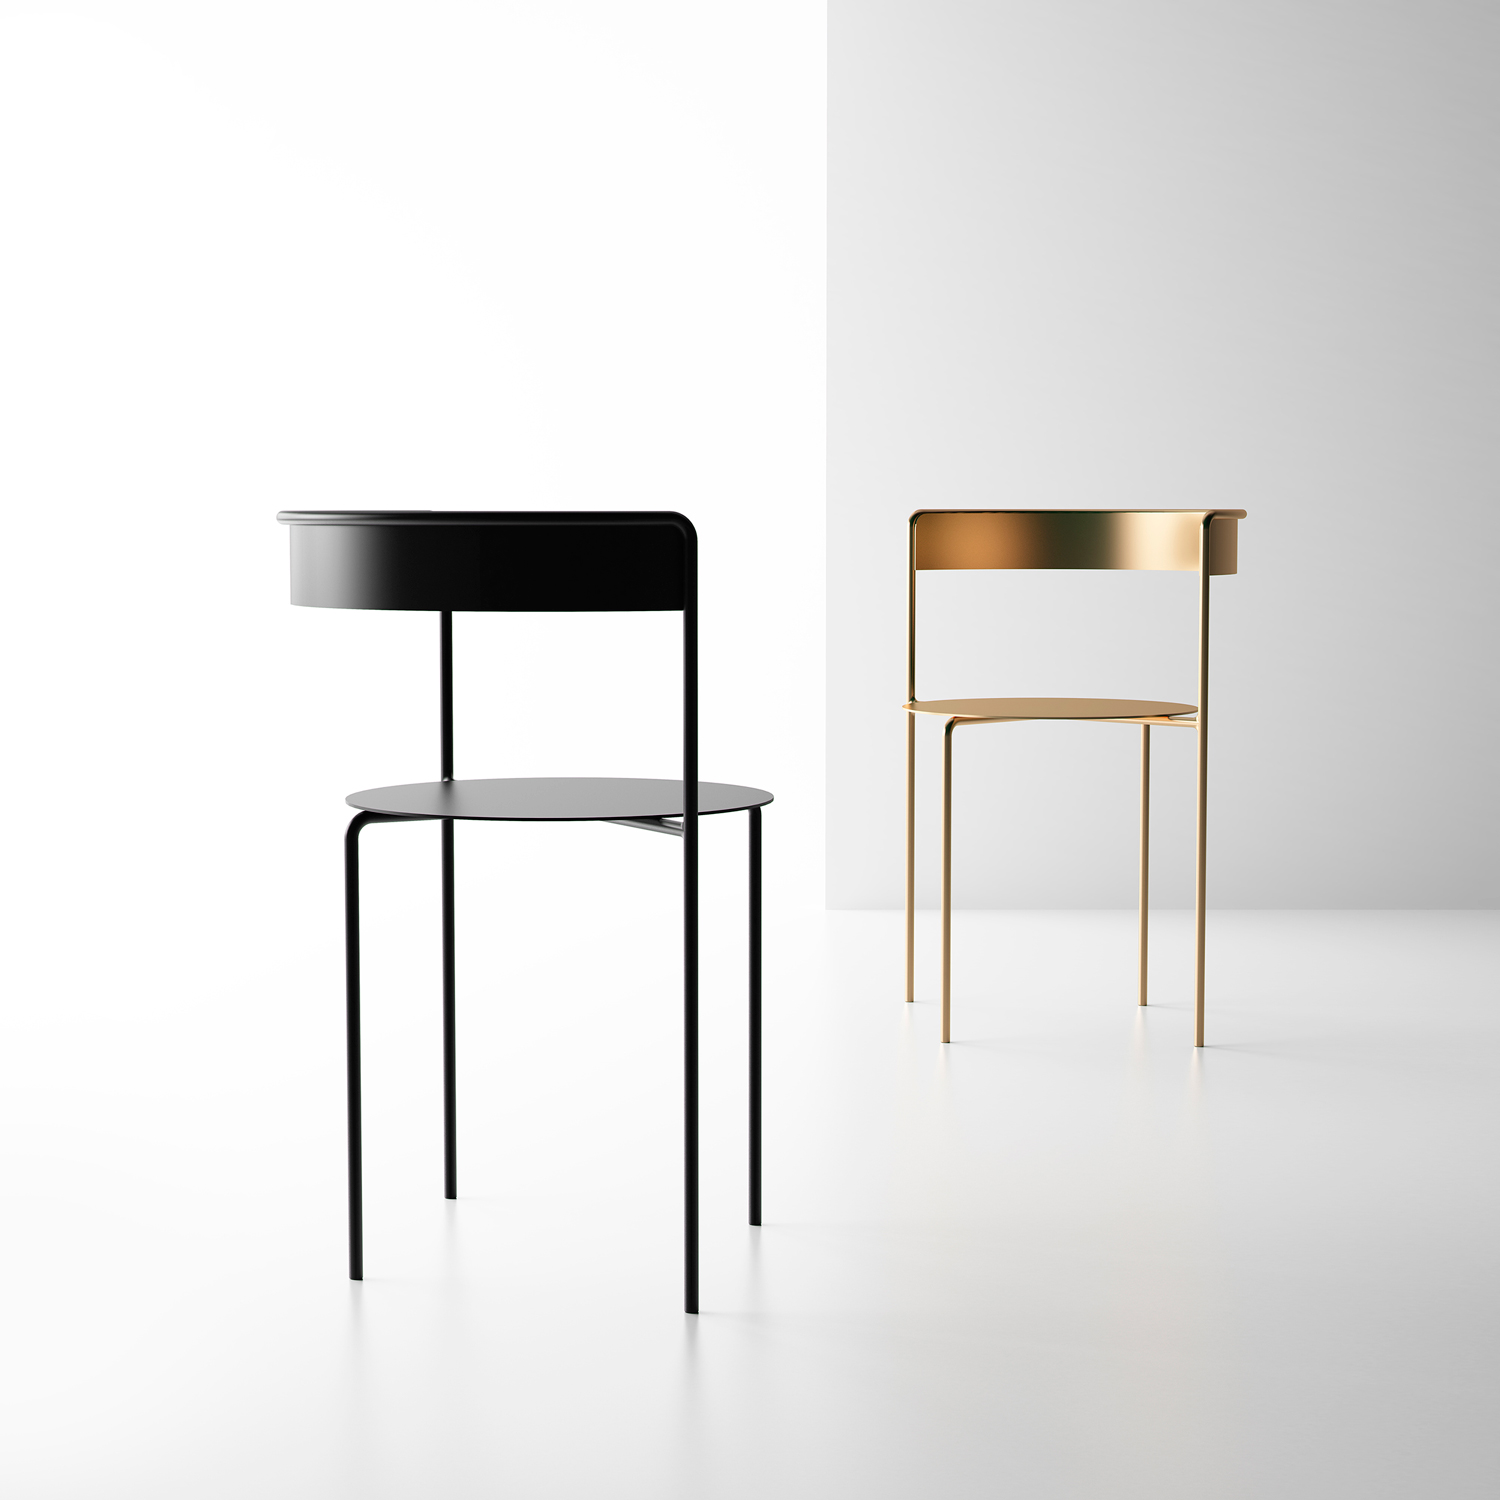 Avoa Chair by Pedro Paulo Venzon for Matter | Yellowtrace